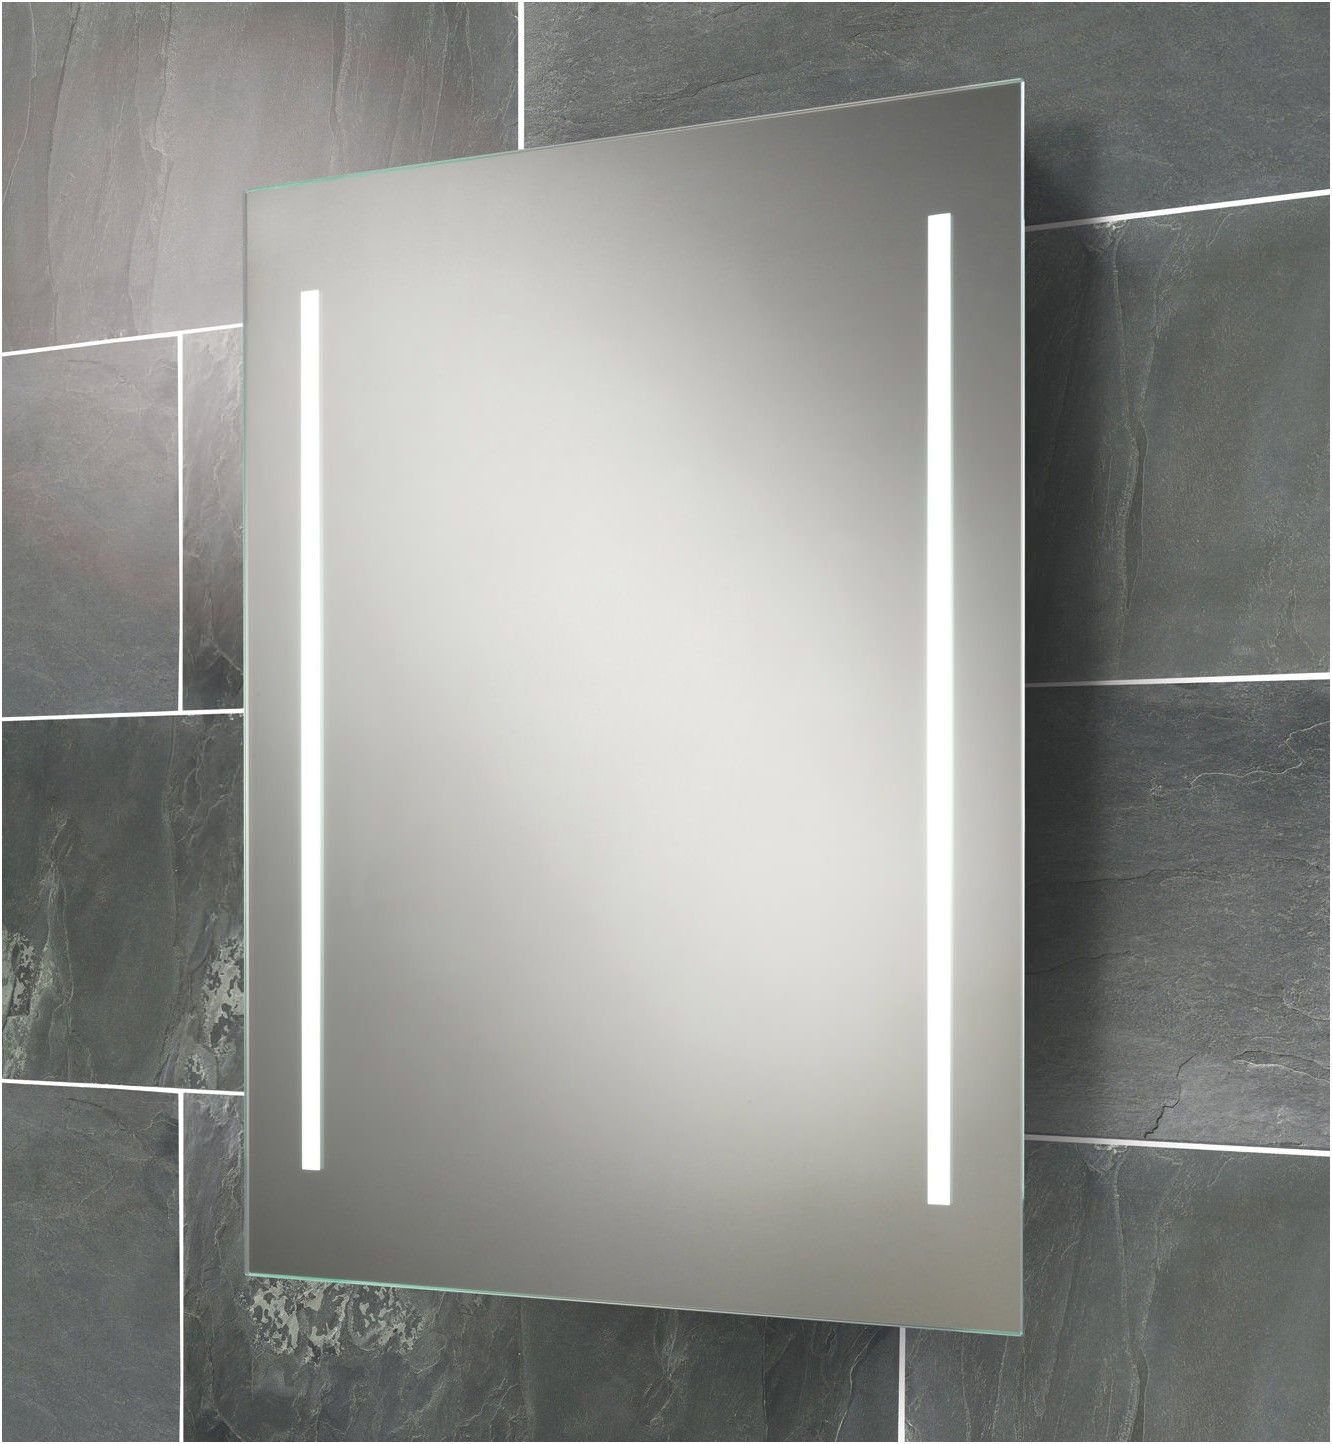 Led battery bathroom mirrors - Bathroom Mirrors With Lights Battery Operated 9designsemporium From Led Battery Bathroom Mirrors